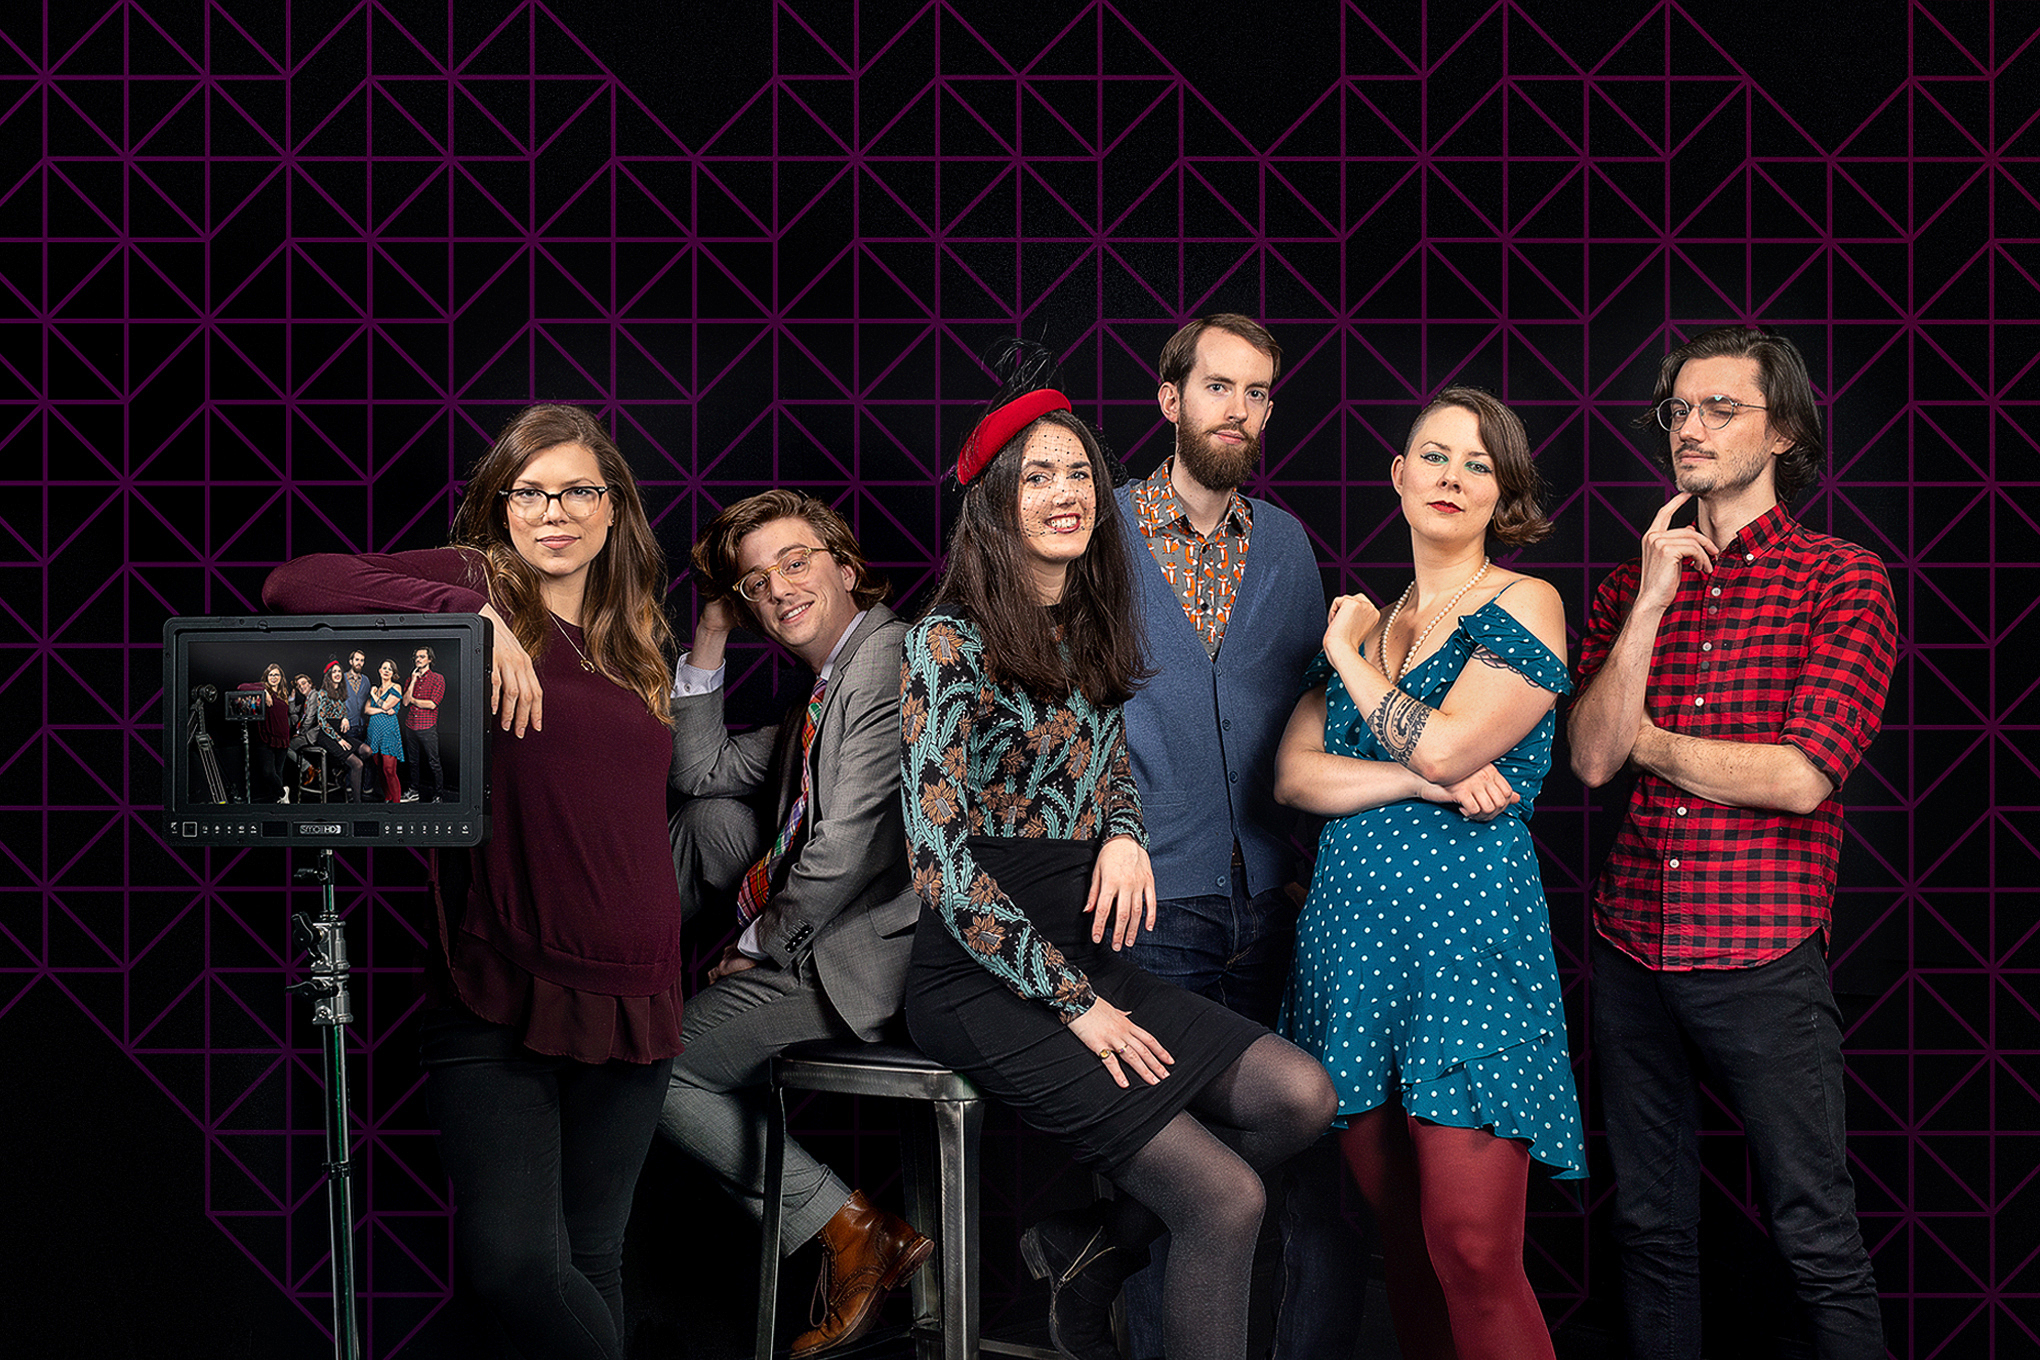 A group photo of the Polygon video team in a dark studio with graphic pattern